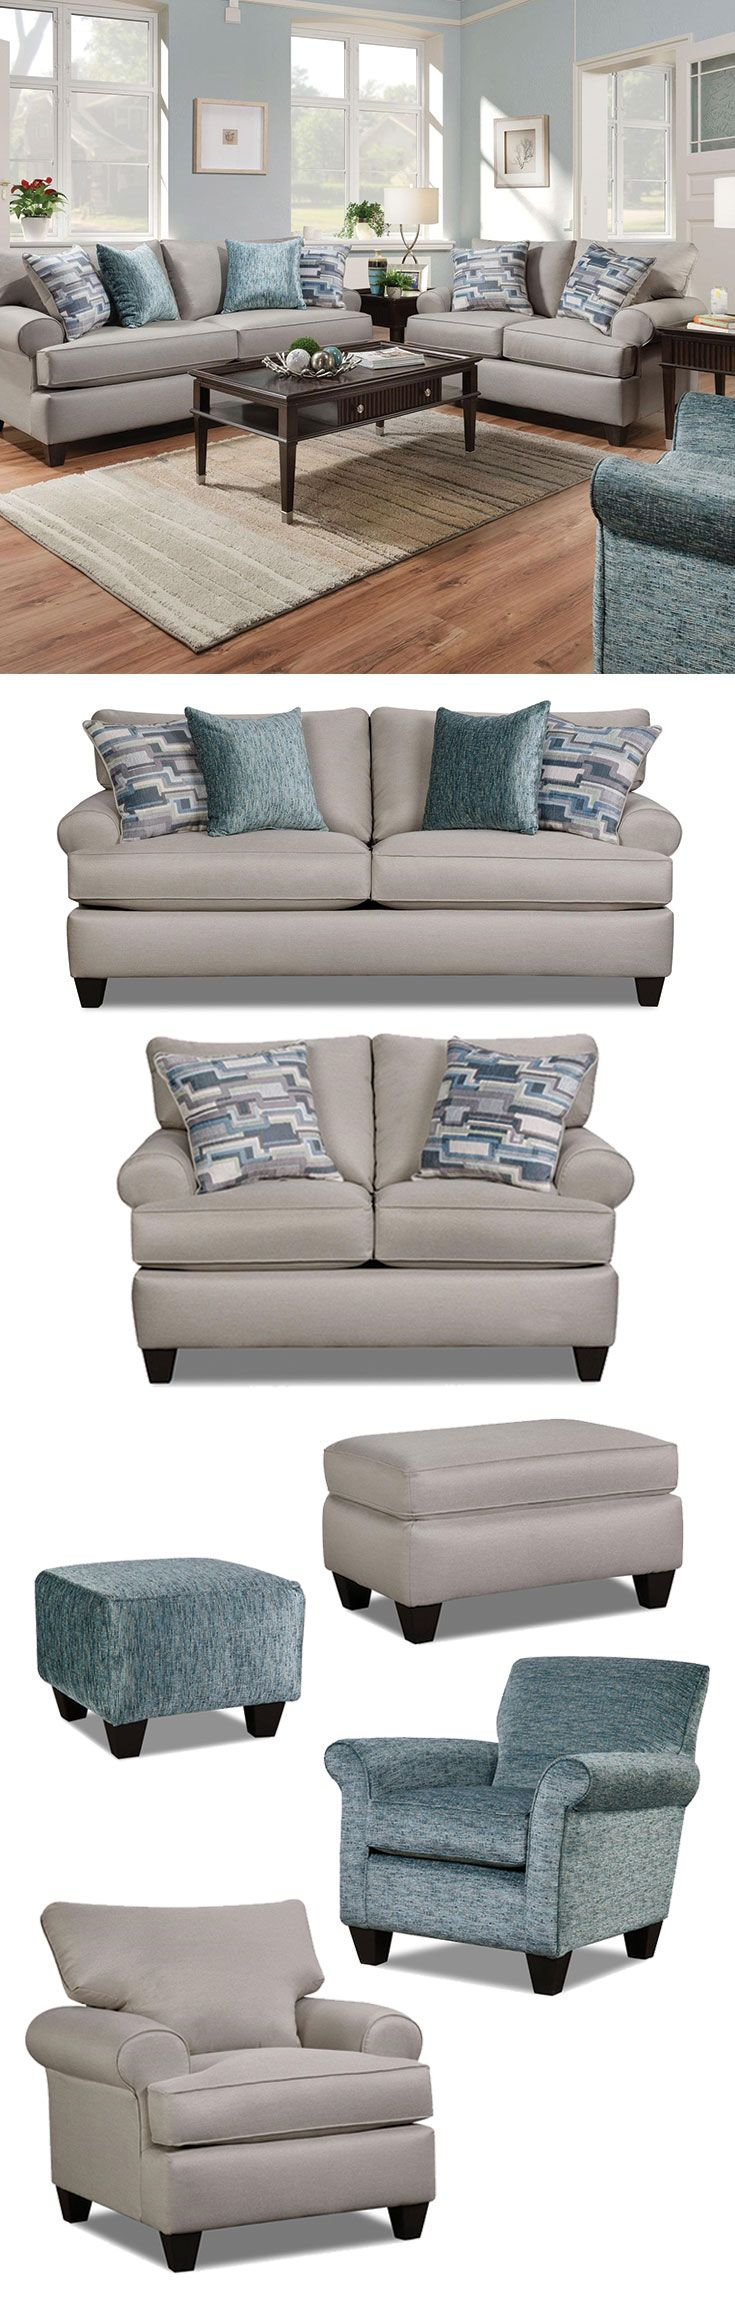 The Hogan Nickel Sofa By Corinthian At Great American Home Store In The  Memphis, TN ...